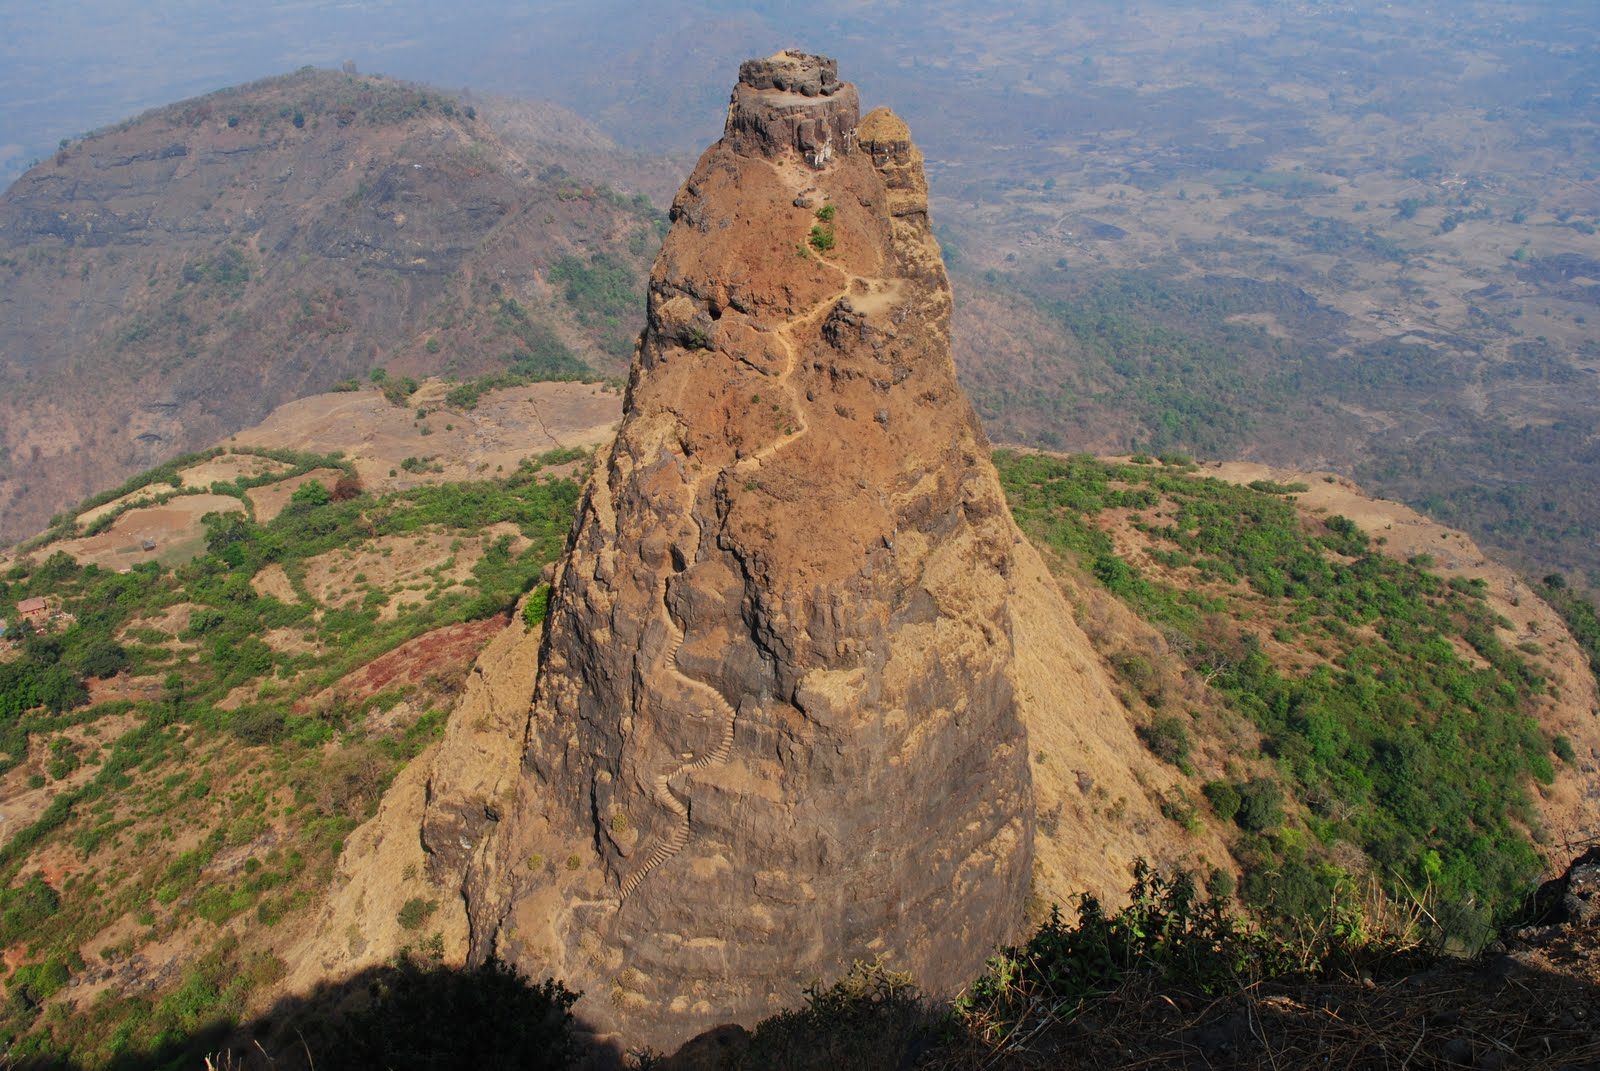 Prabalgad Fort dating from around 1458. Carved out of the rock at an an elevation of 2,300 feet. Maharashtra, India.